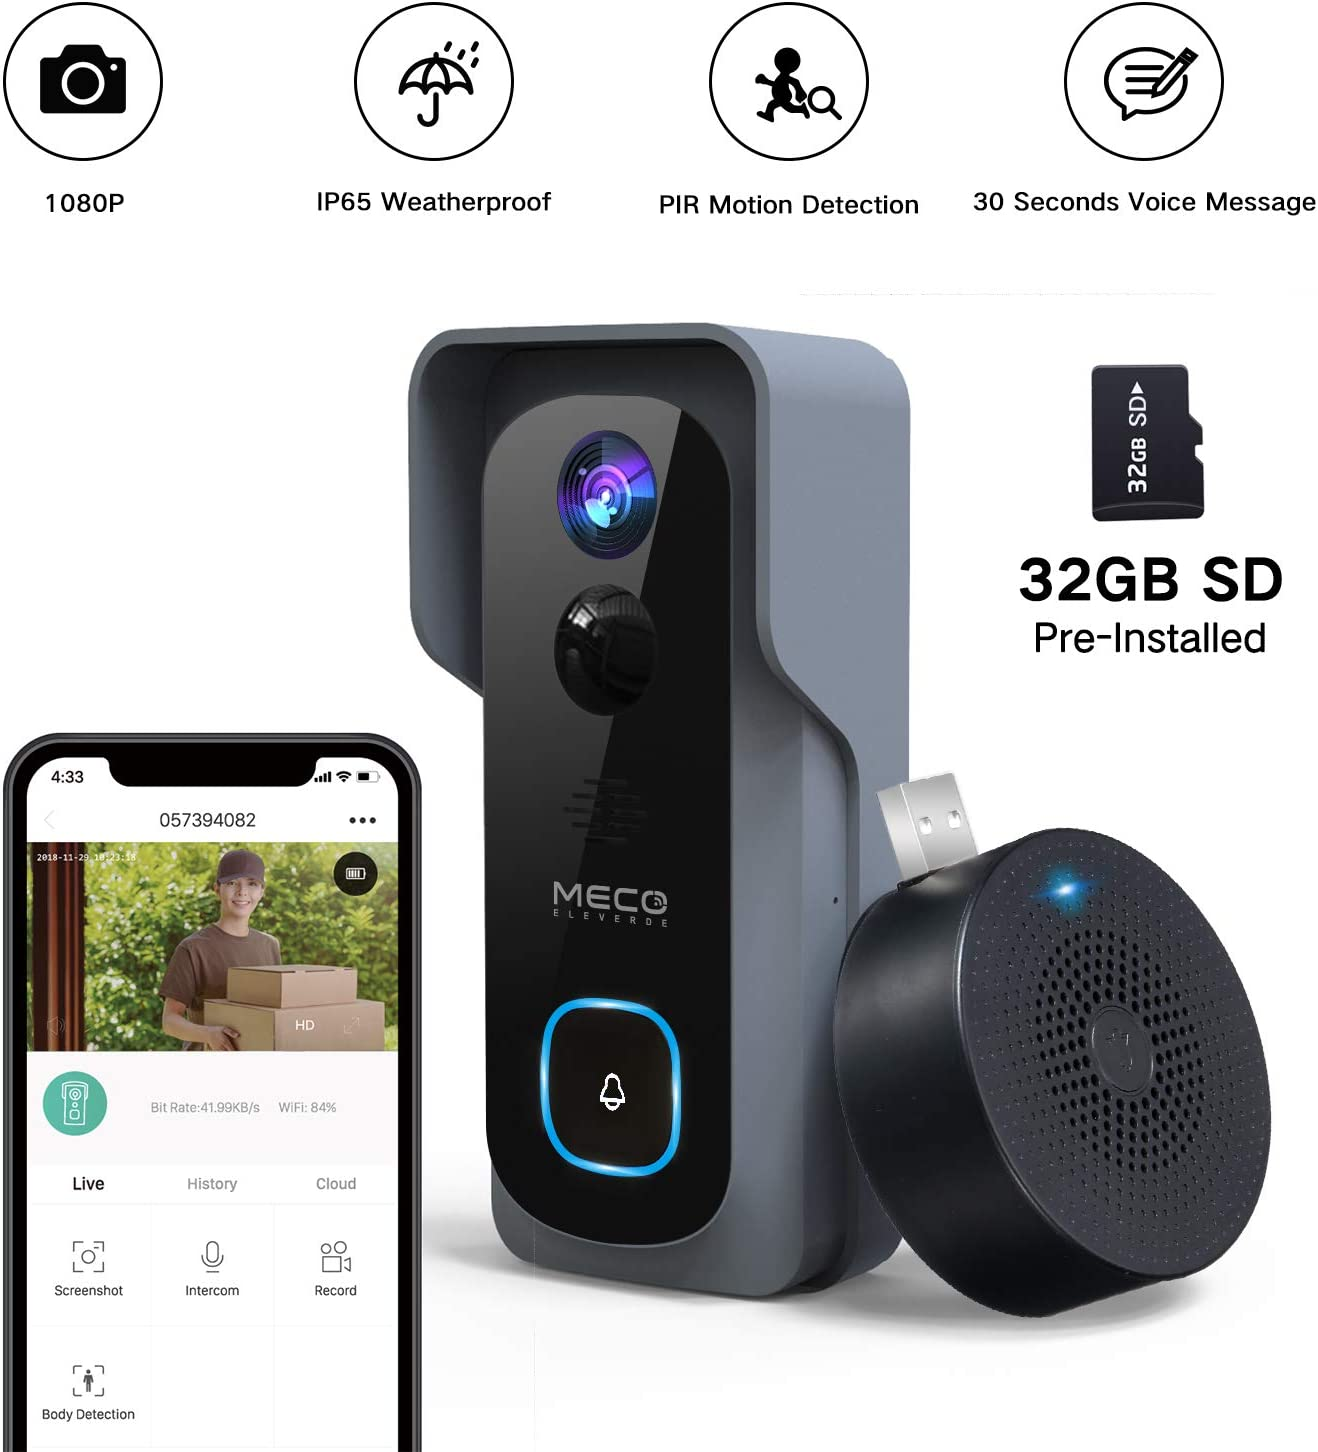 ?32GB Preinstalled? WiFi Video Doorbell,MECO 1080P Doorbell Camera with Free Chime, Wireless Doorbell with Motion Detector, Night Vision, IP65 Waterproof, 166°Wide Angle, 2 Way Audio, 2.4GHz WiFi